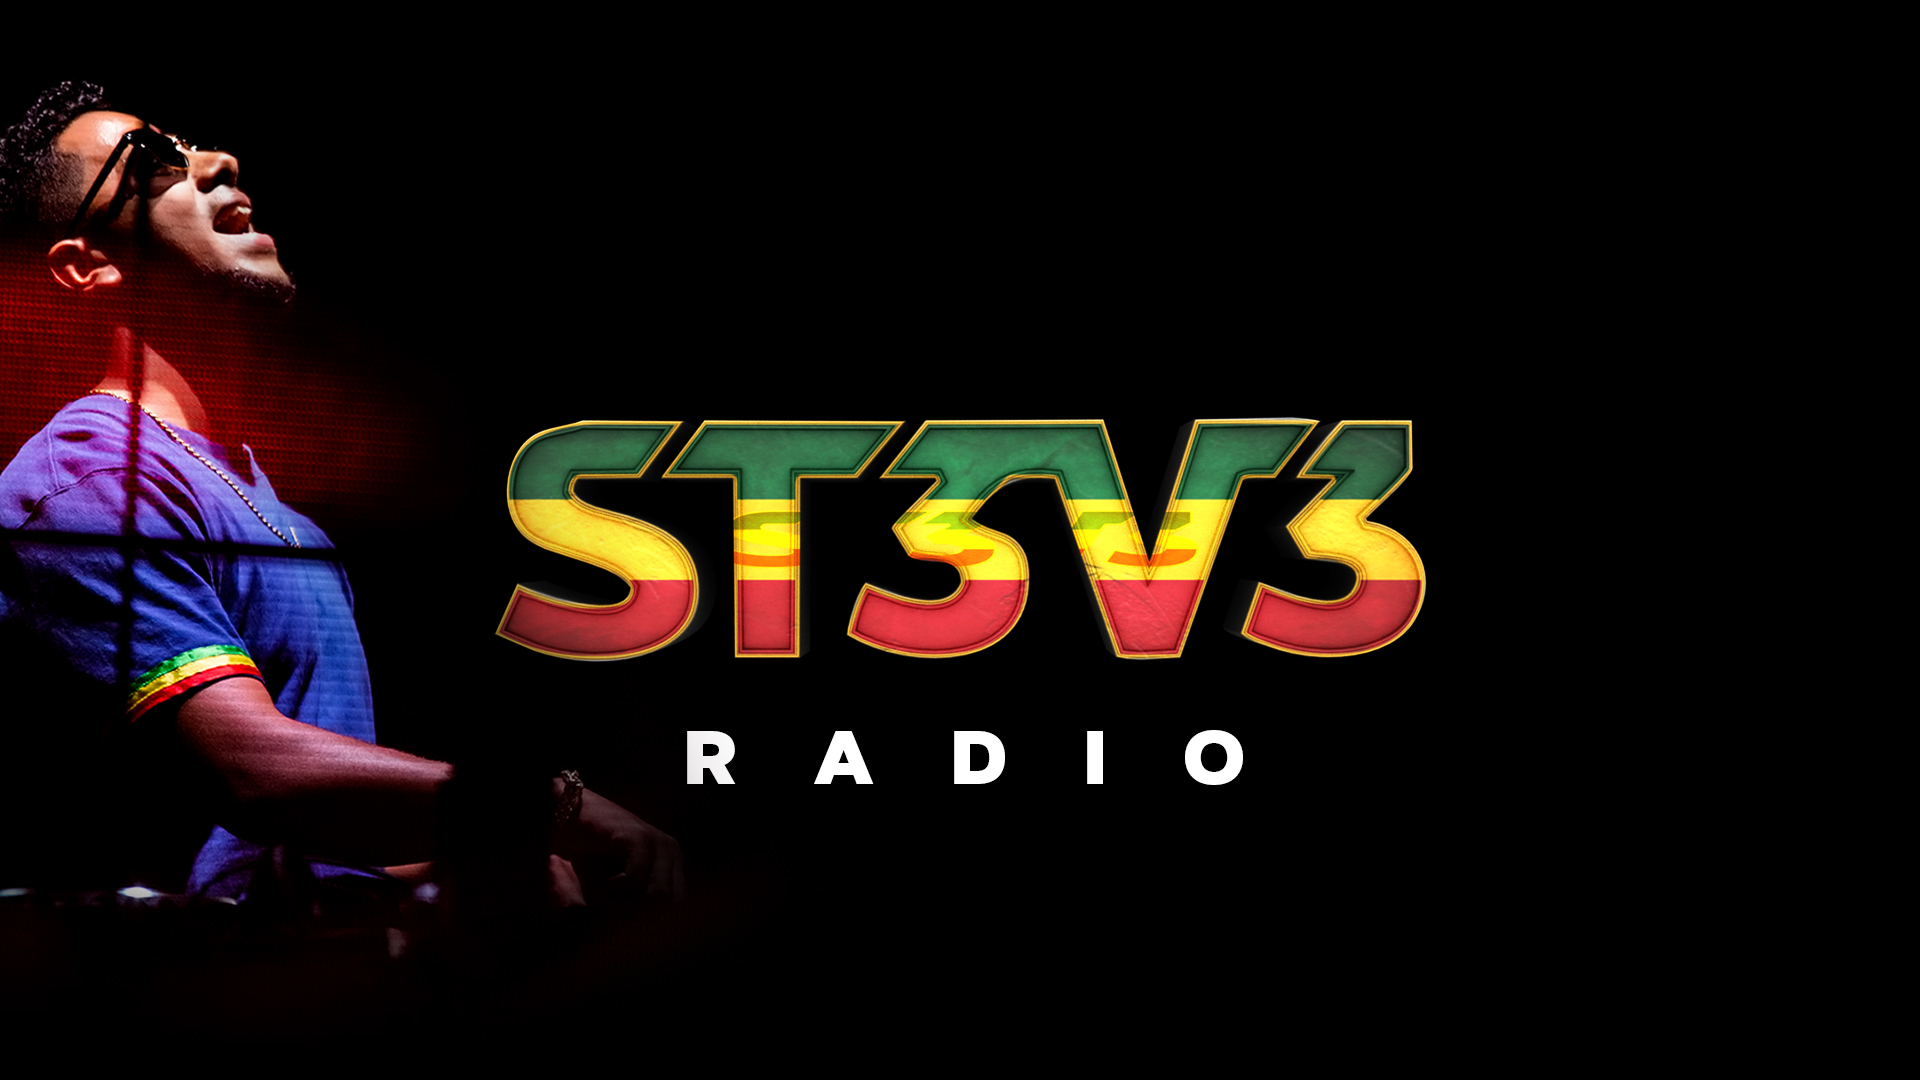 DJ ST3V3 Launches Radio Mix, Plans To Play Twice Every Month